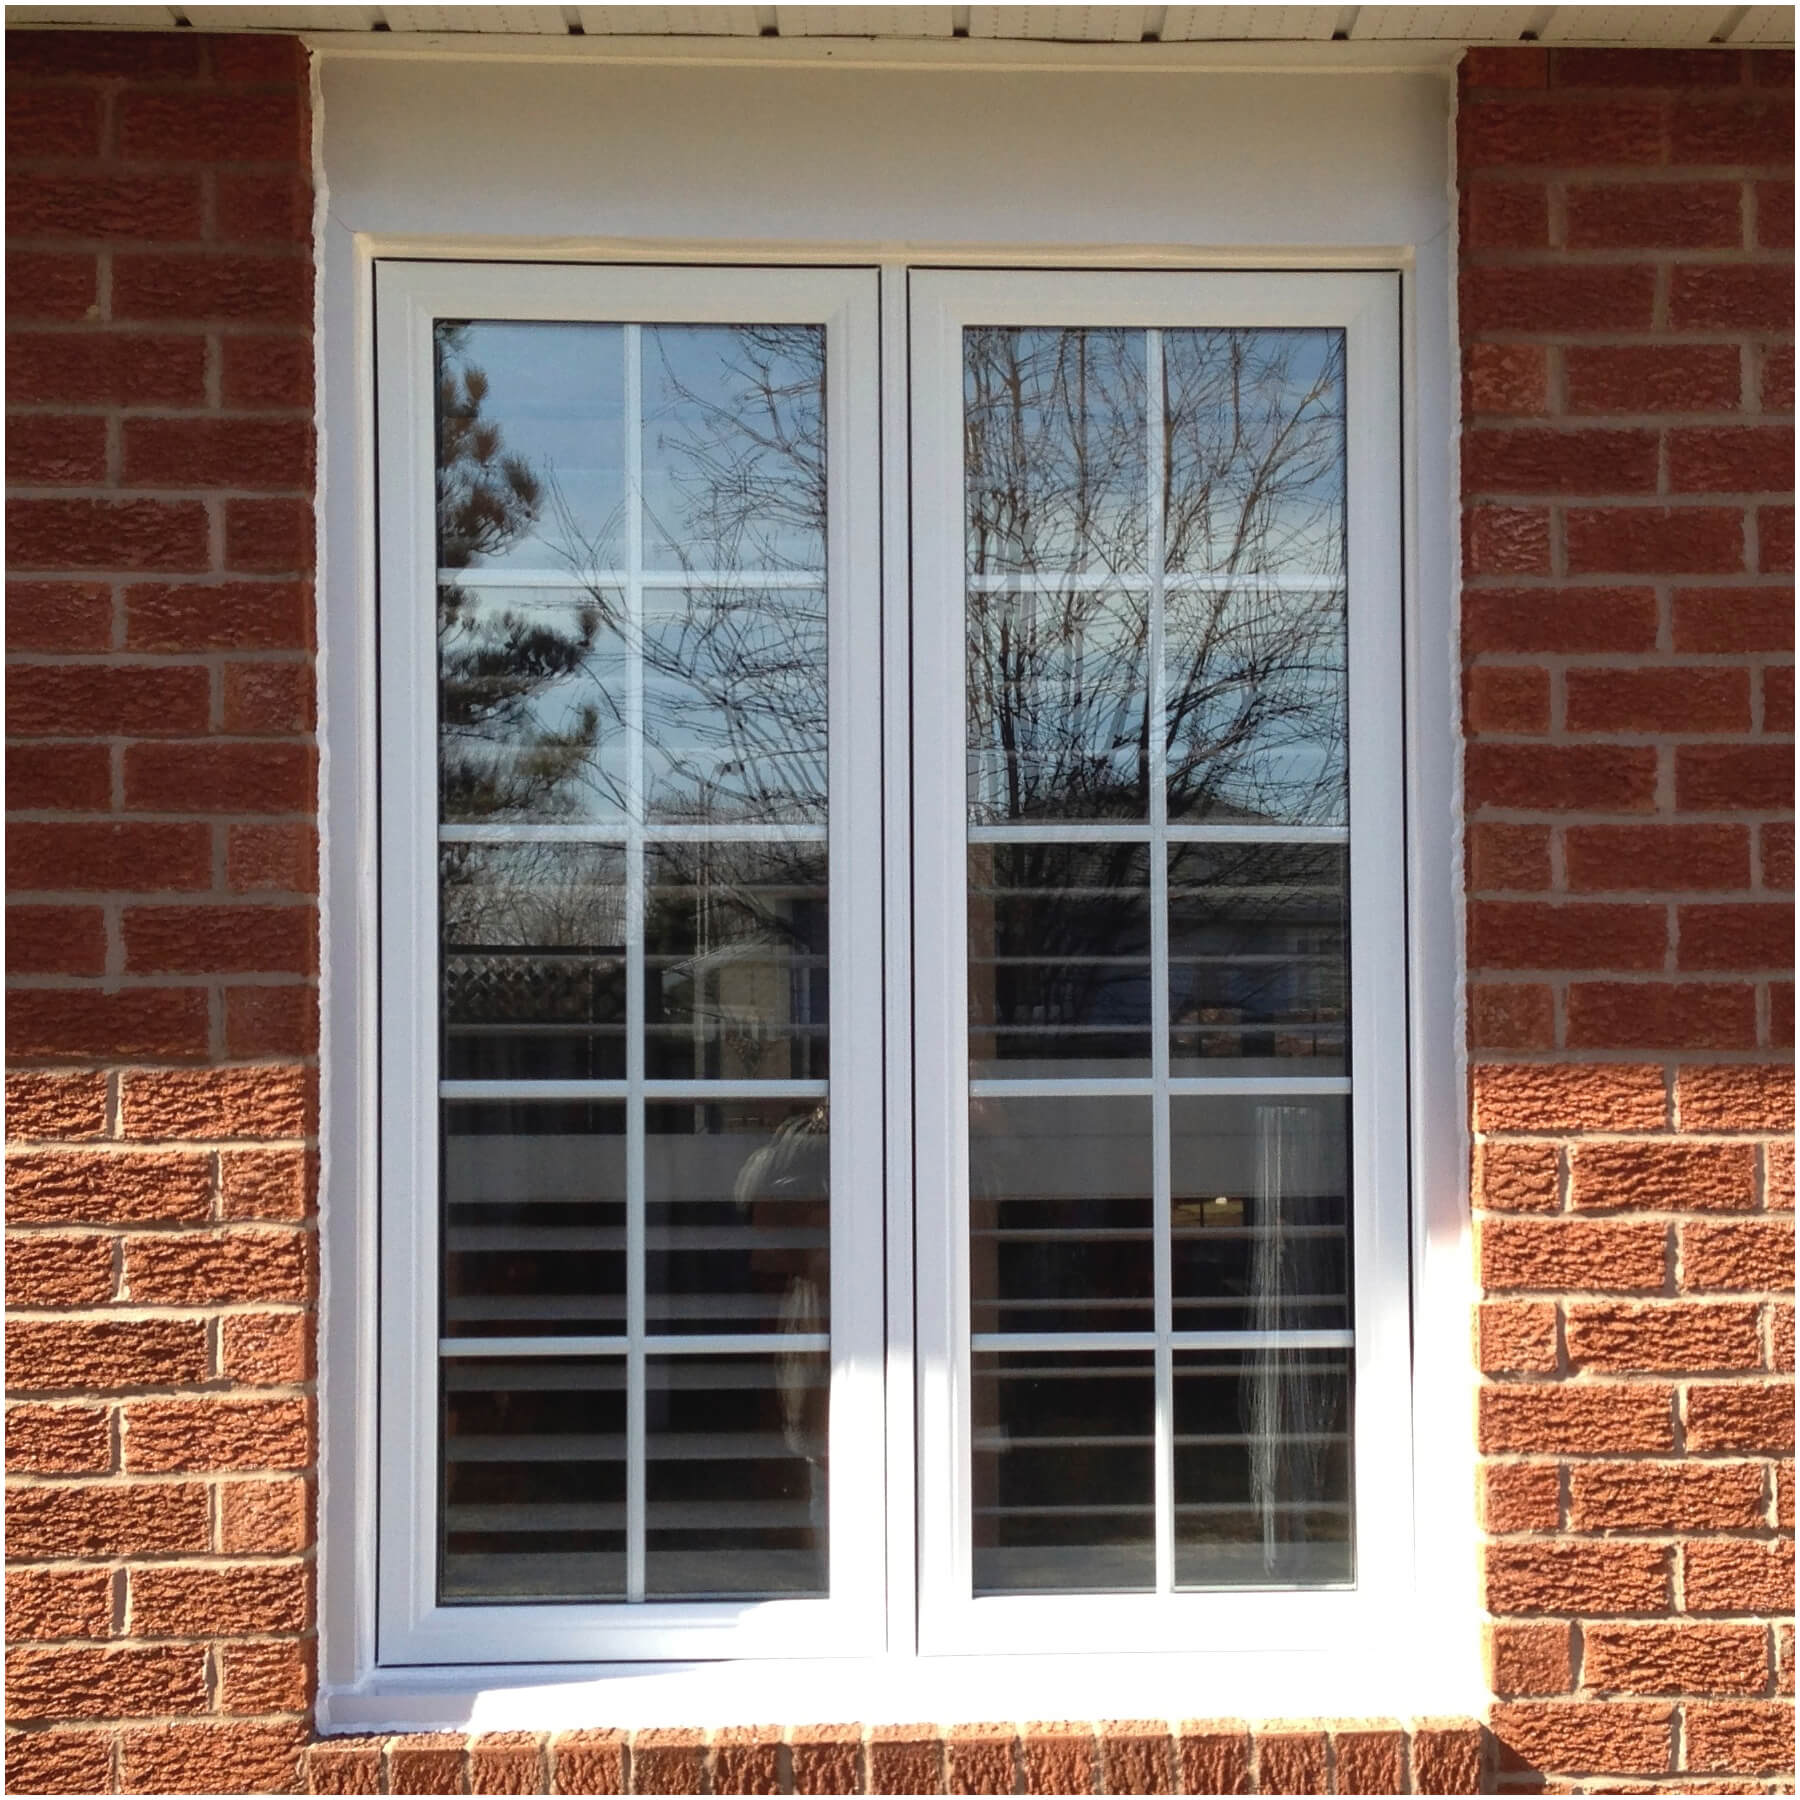 Replacement windows and vinyl replacement windows all for Replacement casement windows